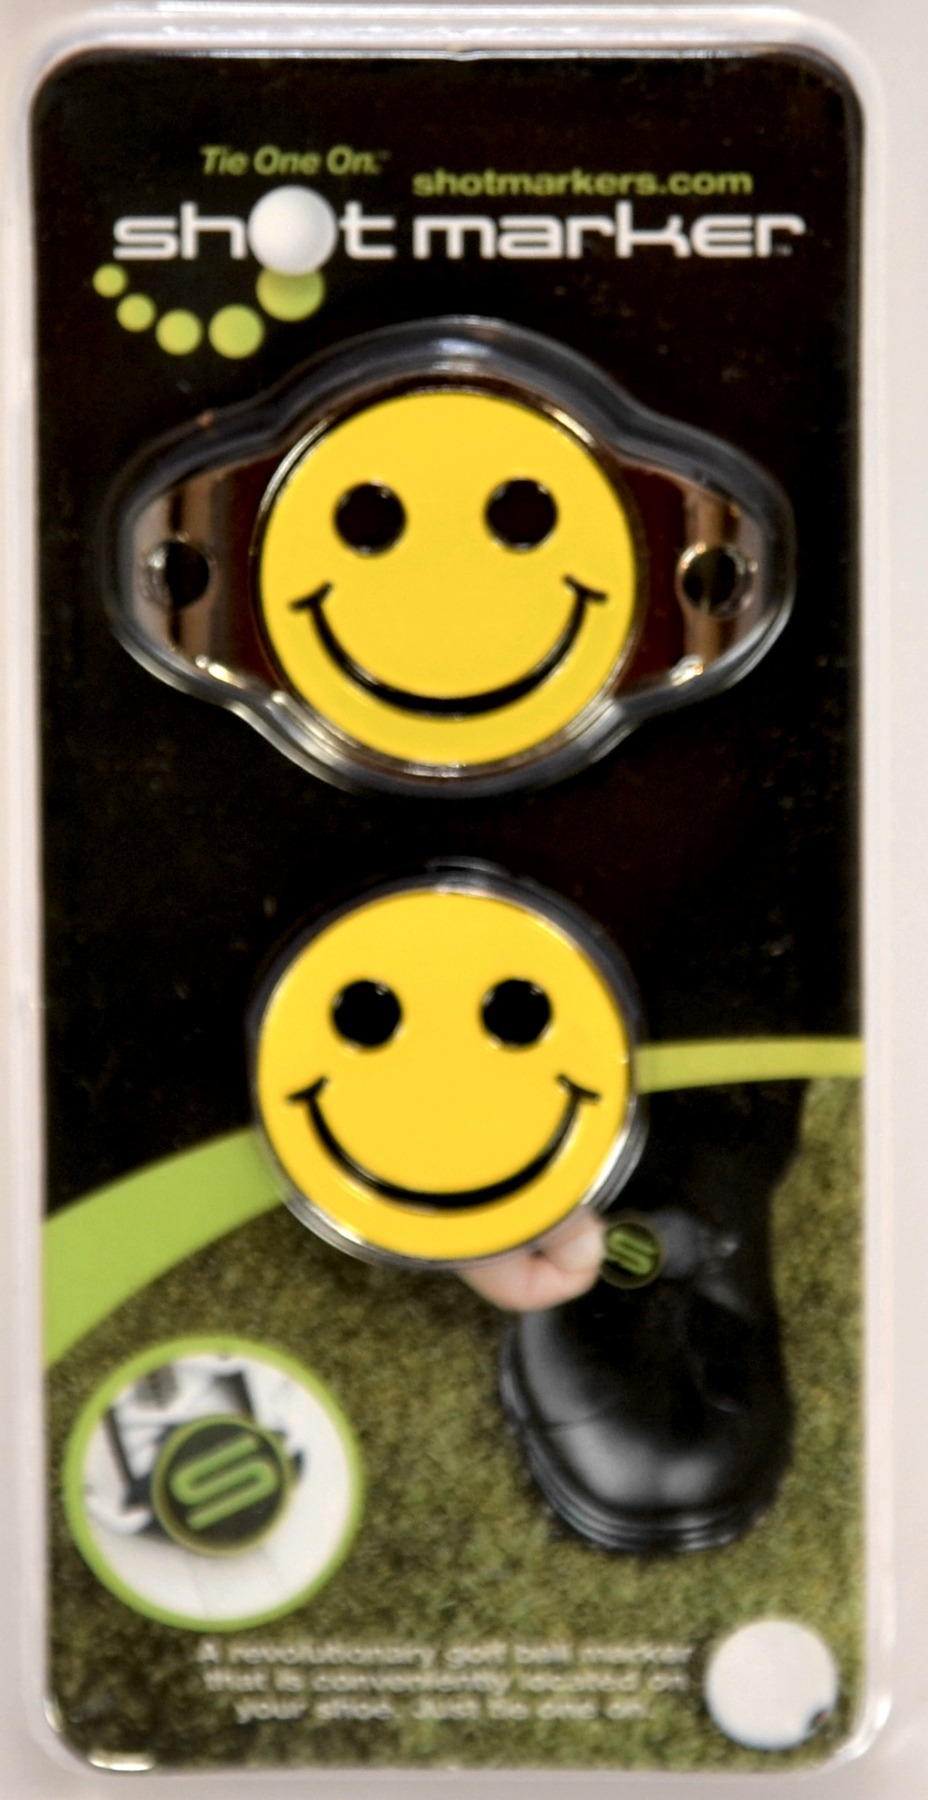 Shotmarker Smiley